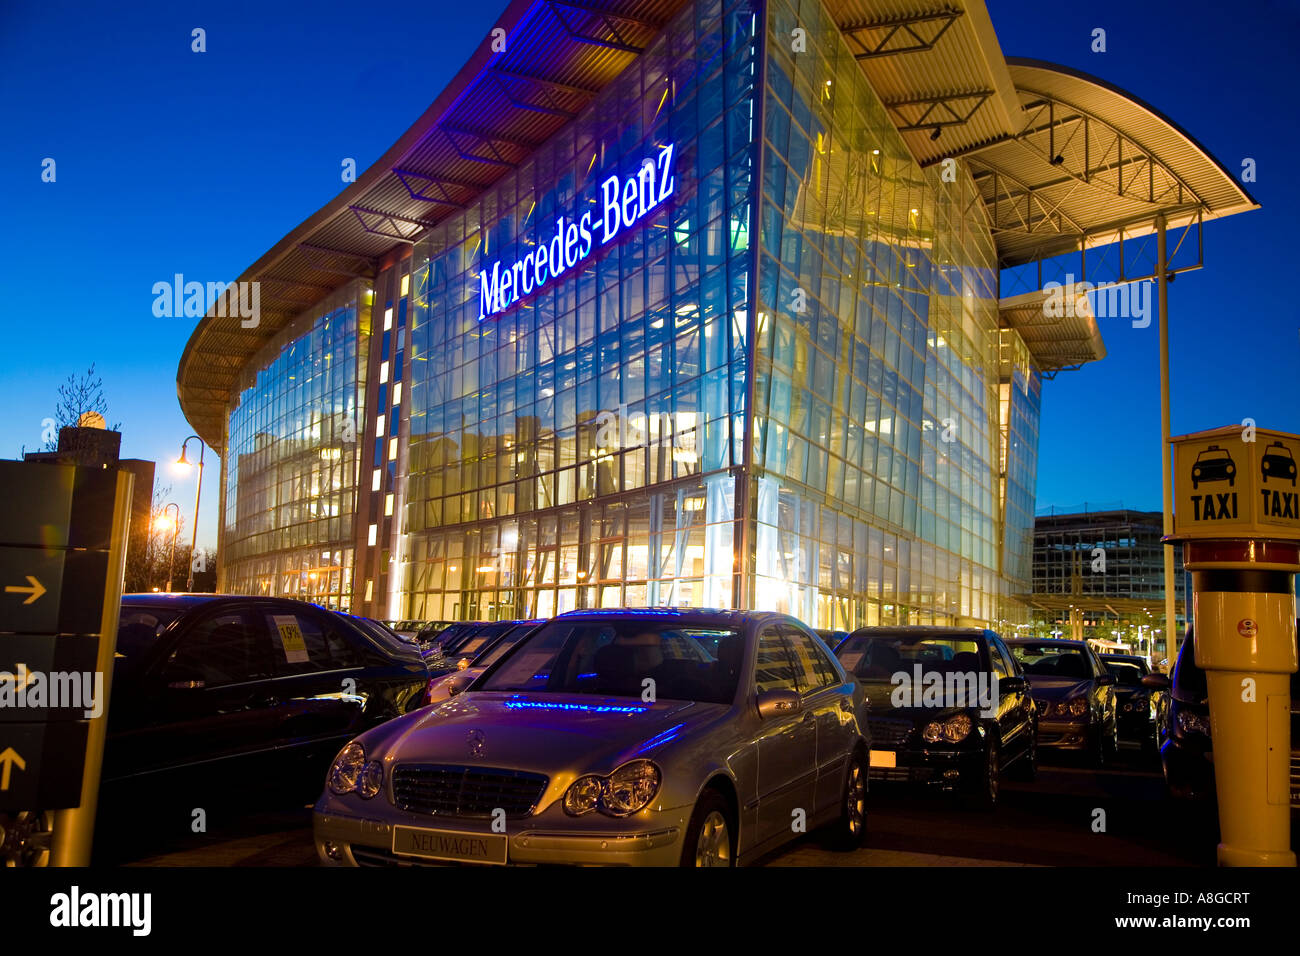 richard benz stock photos & richard benz stock images - alamy